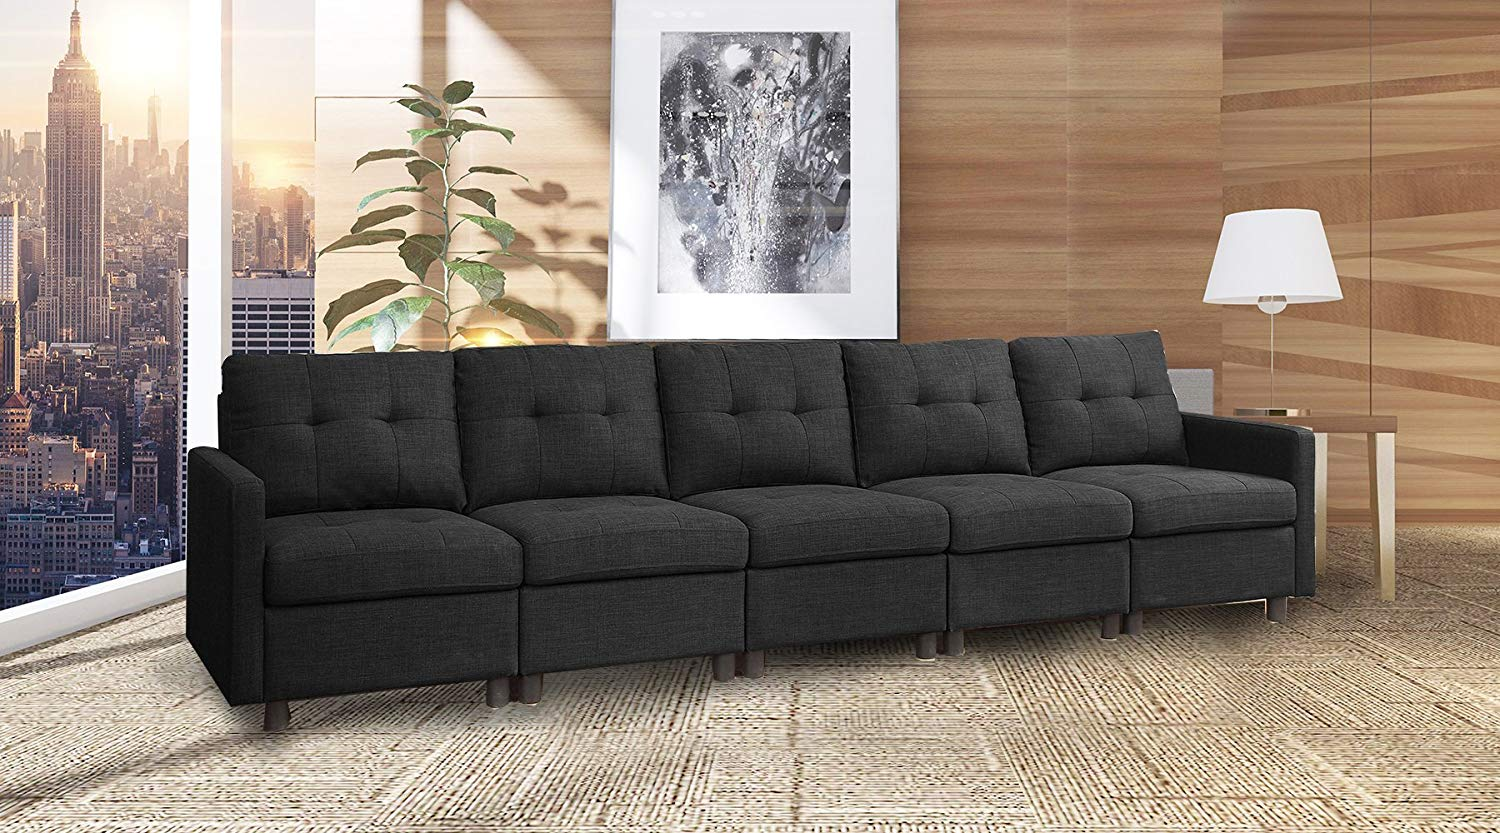 Magnificent Buy 5 Pieces Black Modern Modular Sectional Sofas In Cheap Evergreenethics Interior Chair Design Evergreenethicsorg